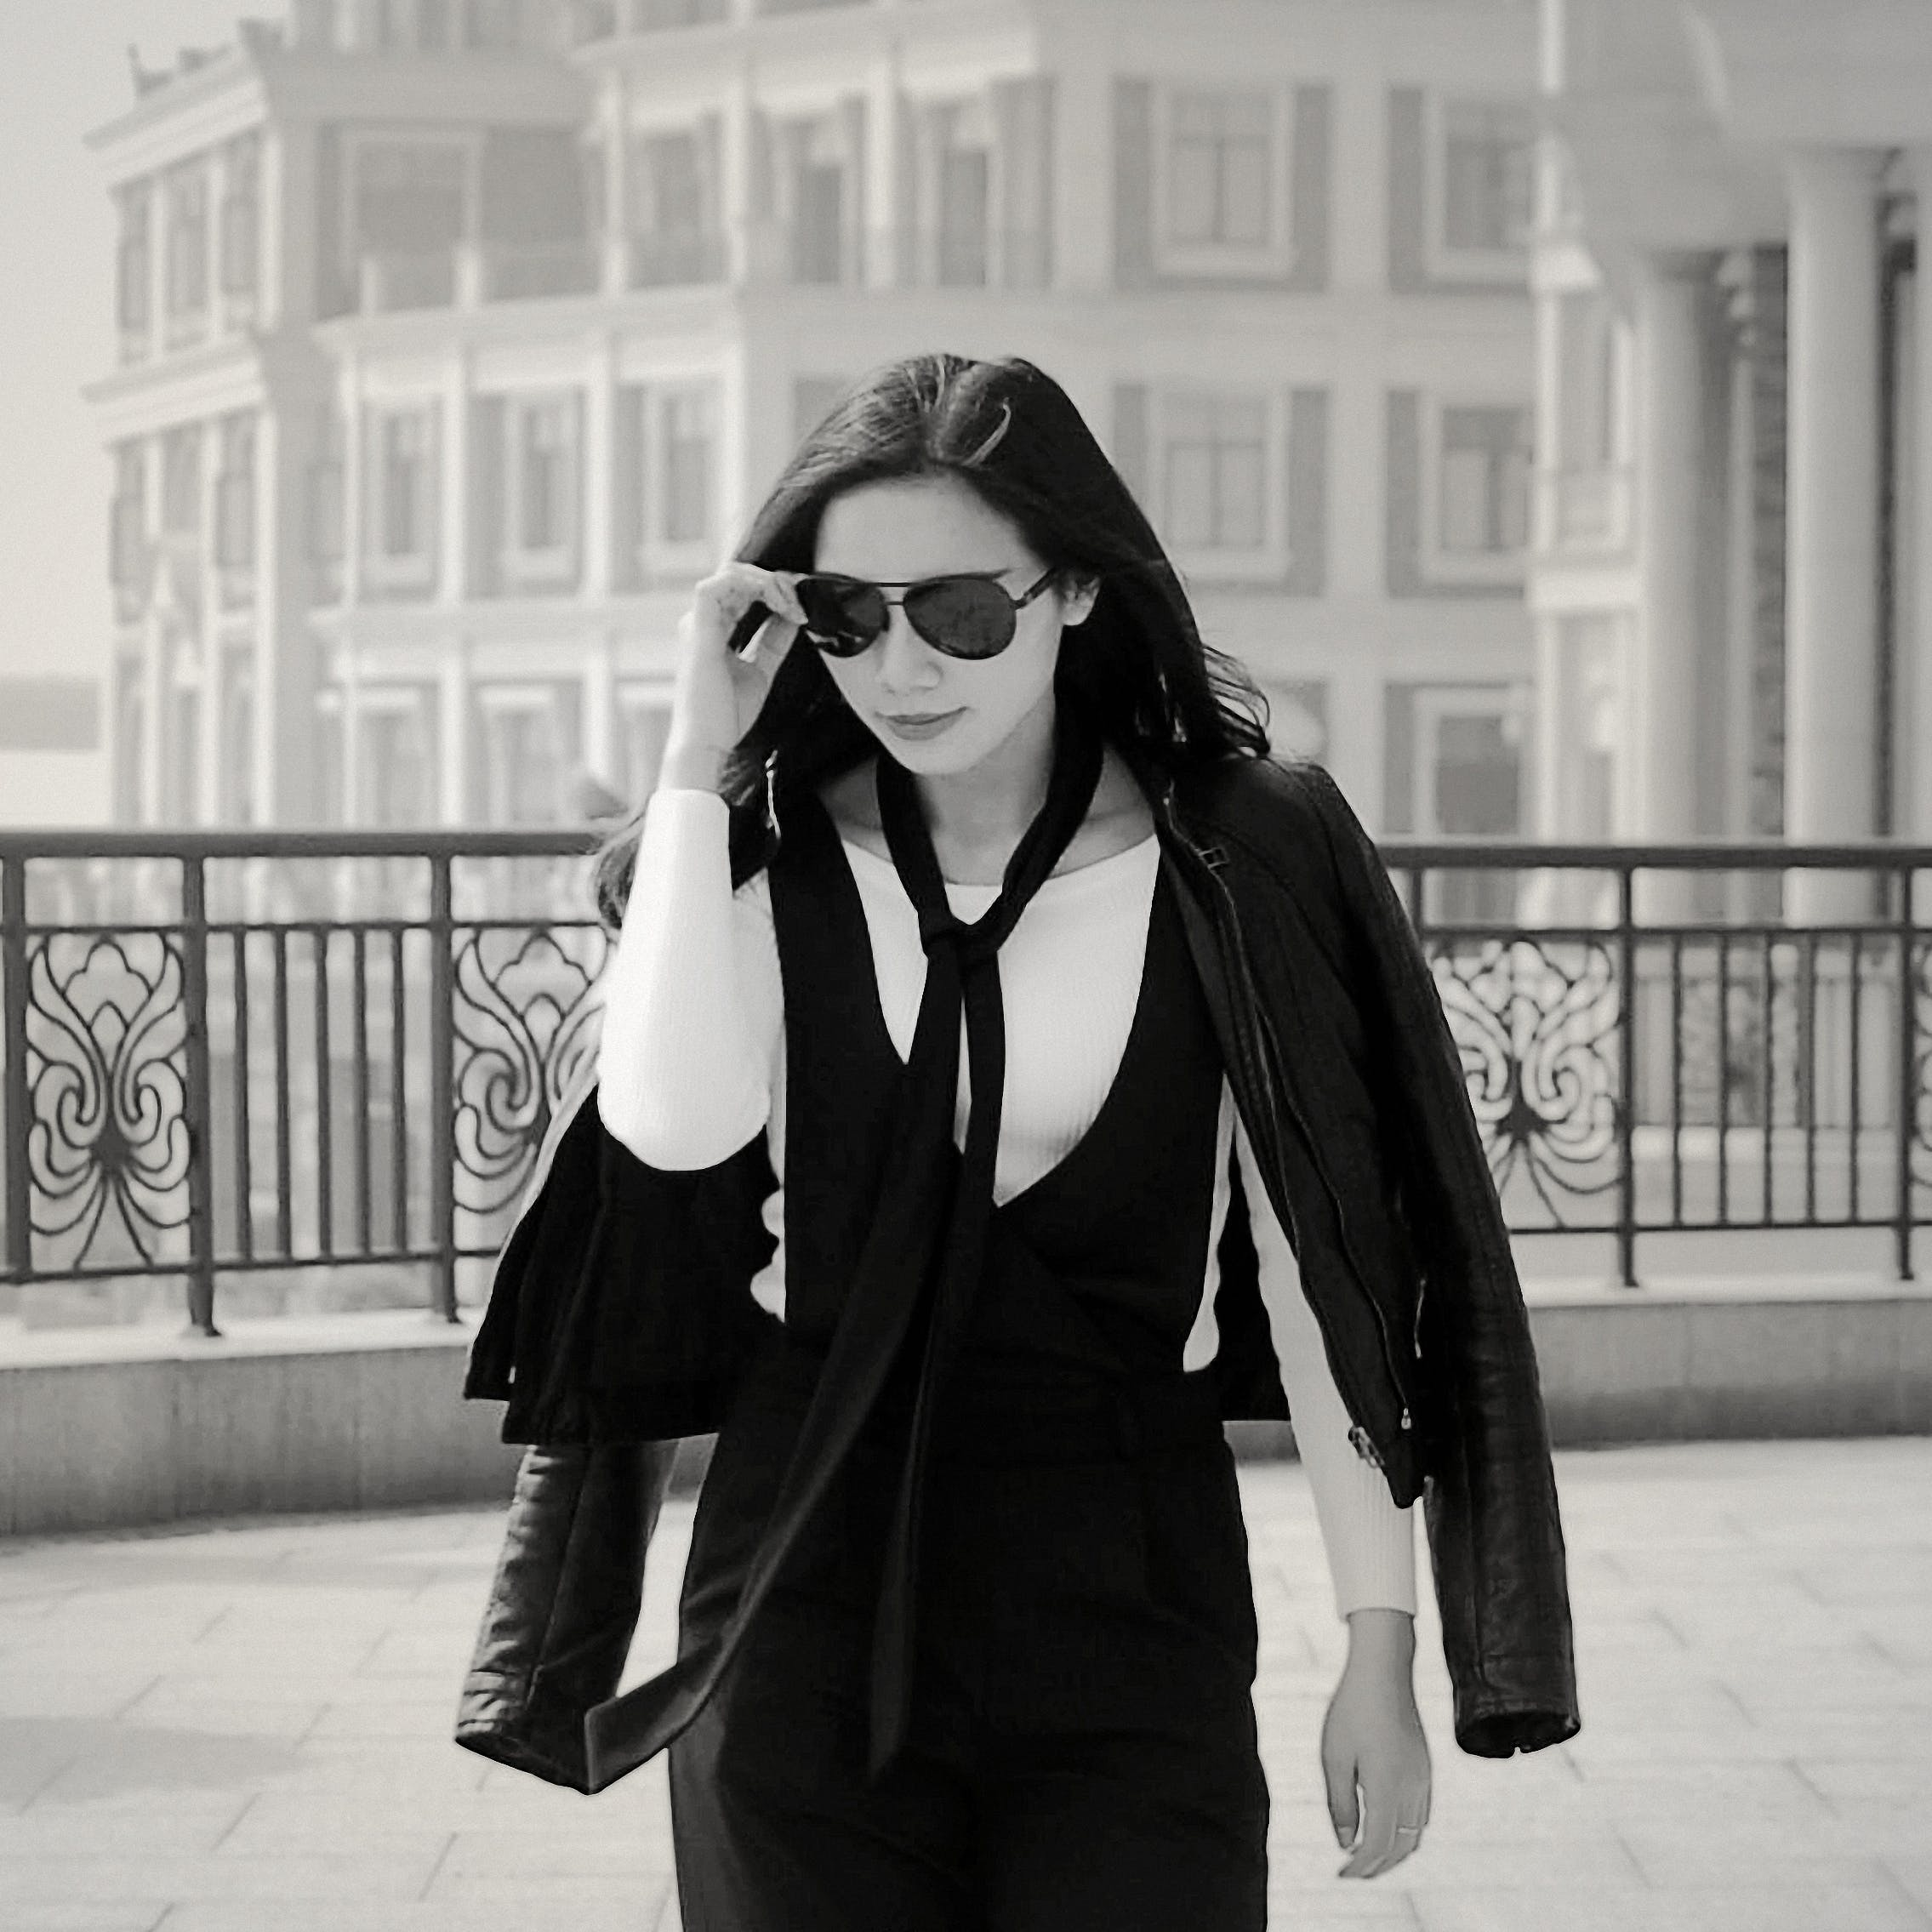 Greyscale Photo of Woman Wearing Sunglasses Long Sleeves Shirt and Skirt during Daytime